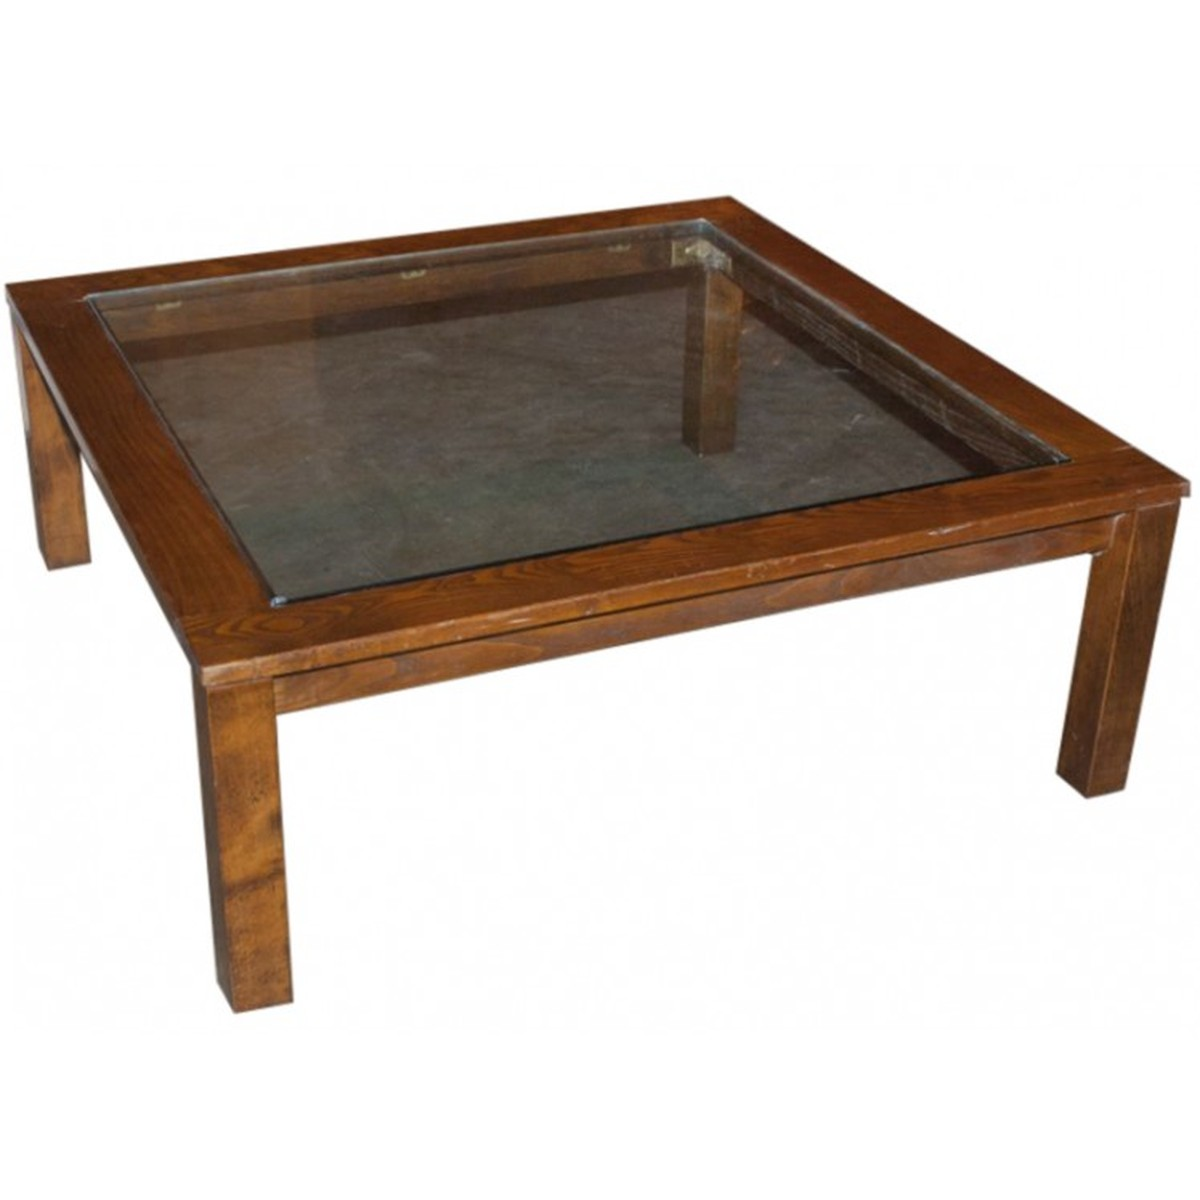 Secondhand hotel furniture lounge furniture large square glass top coffee table Large square coffee table